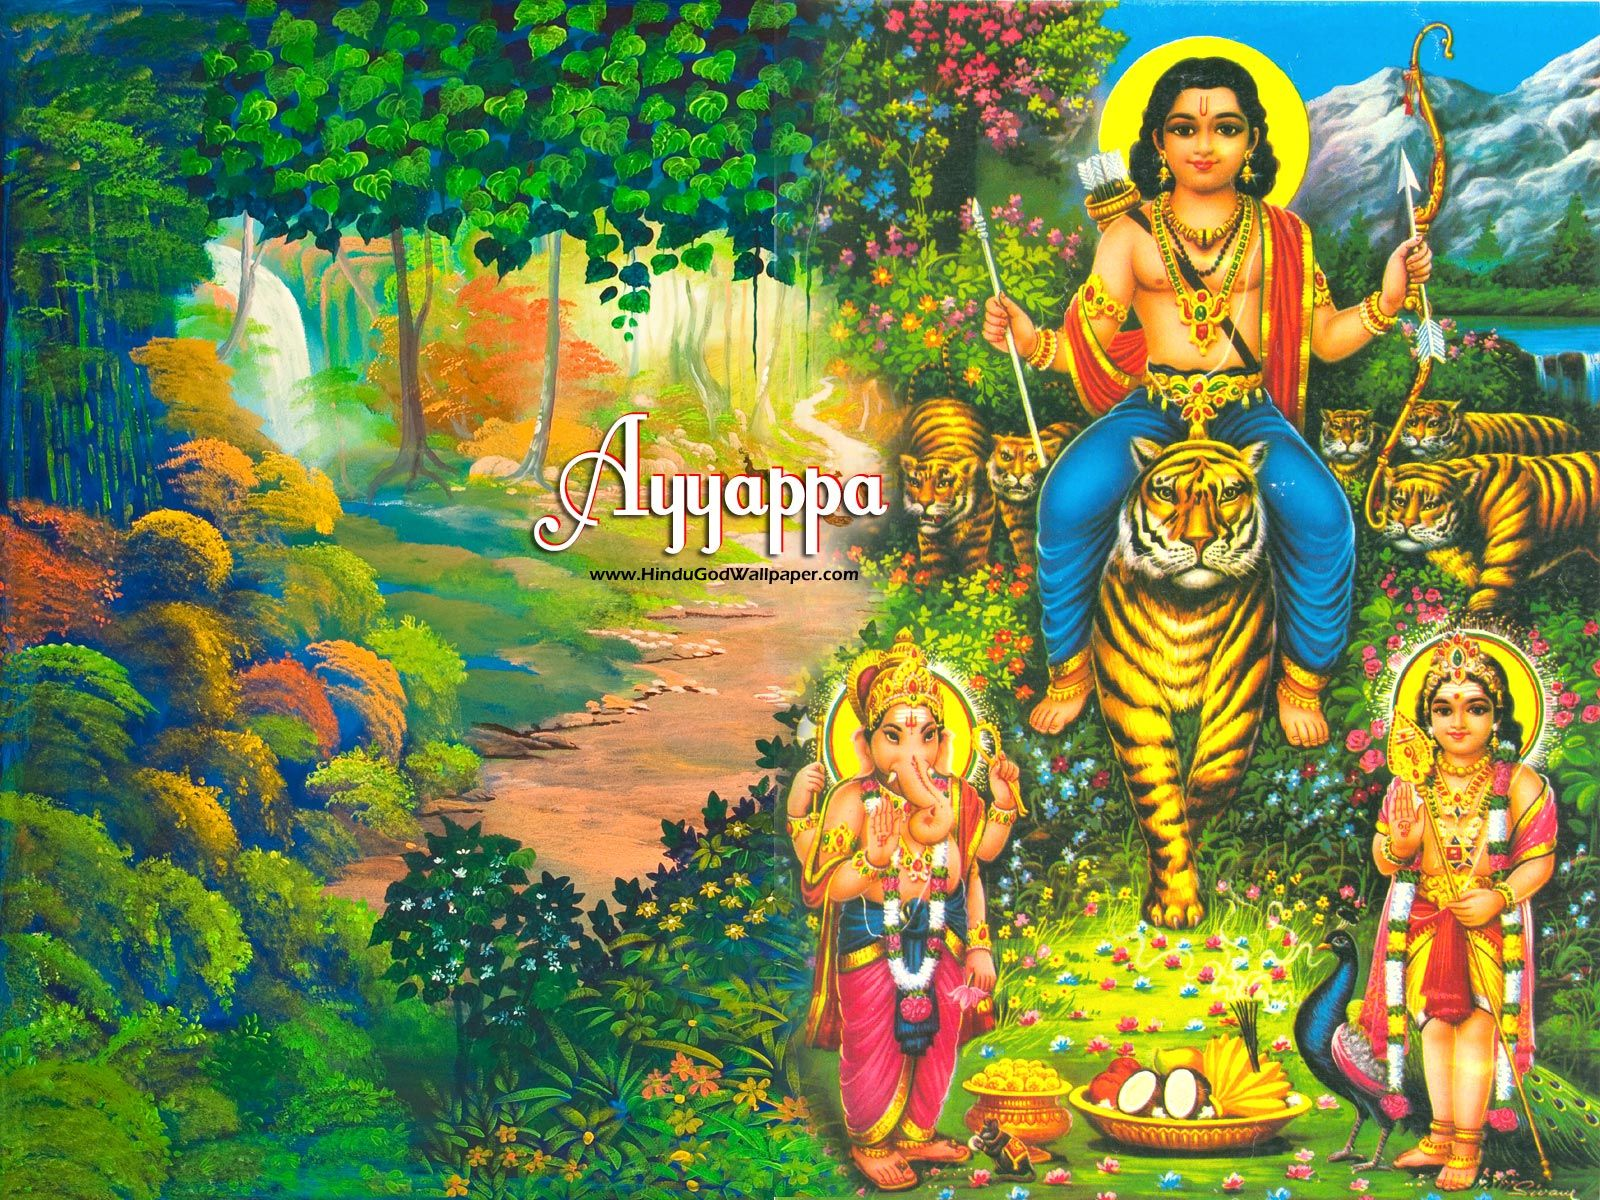 Ayyappa Images and Photos Free Download   dhanvantri   Pinterest     Ayyappa Images and Photos Free Download